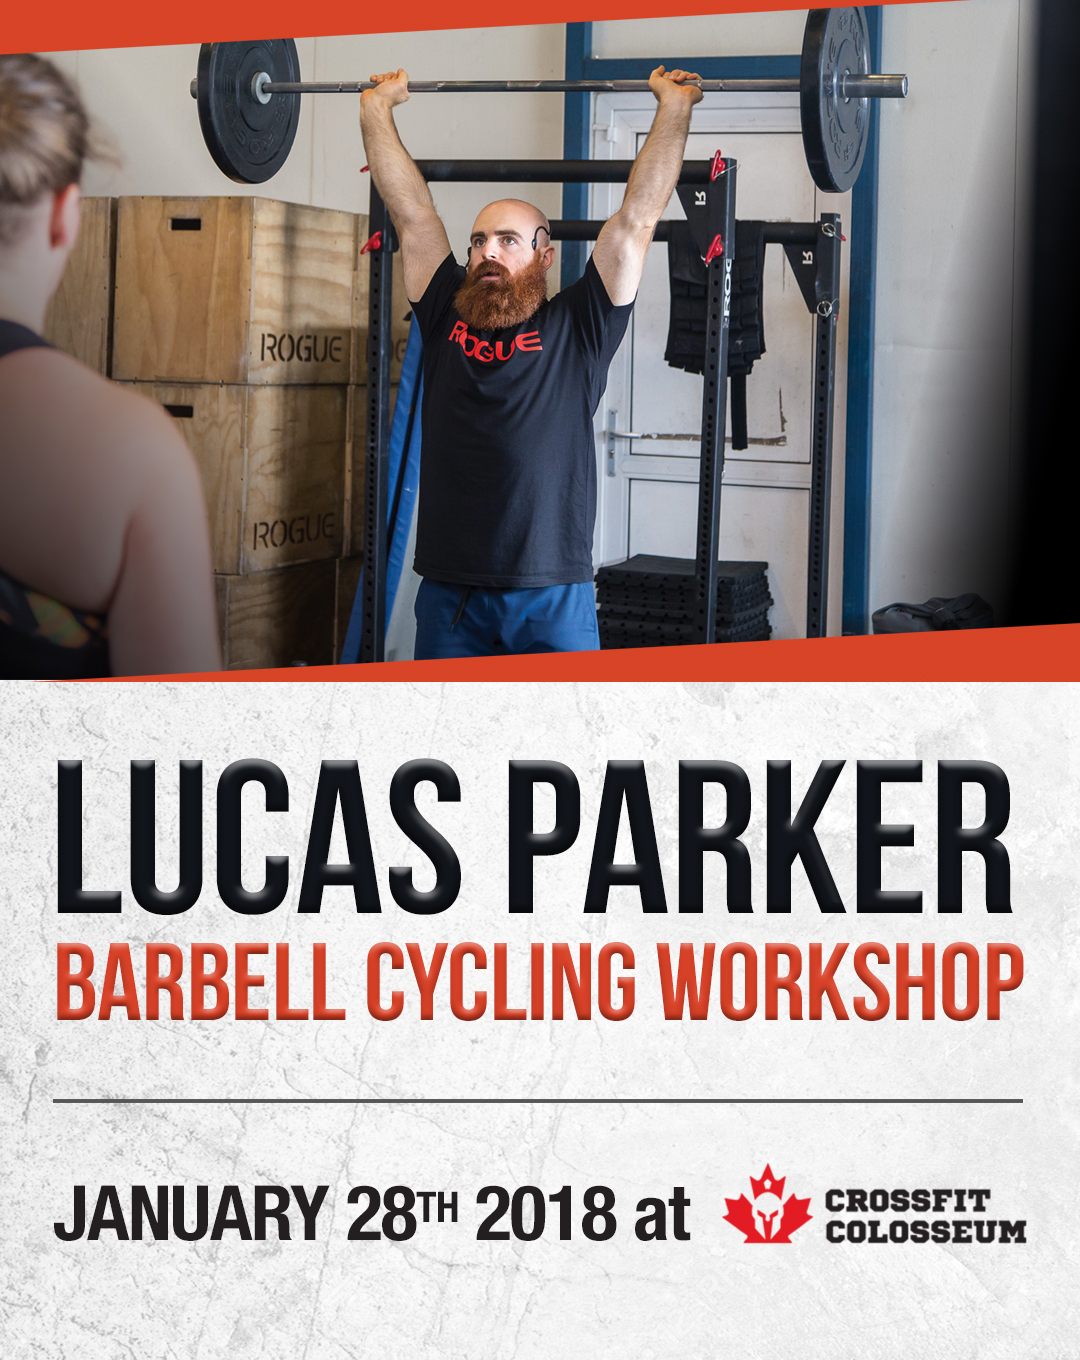 Lucas Parker Barbell Cycling Workshop - CrossFit Colosseum